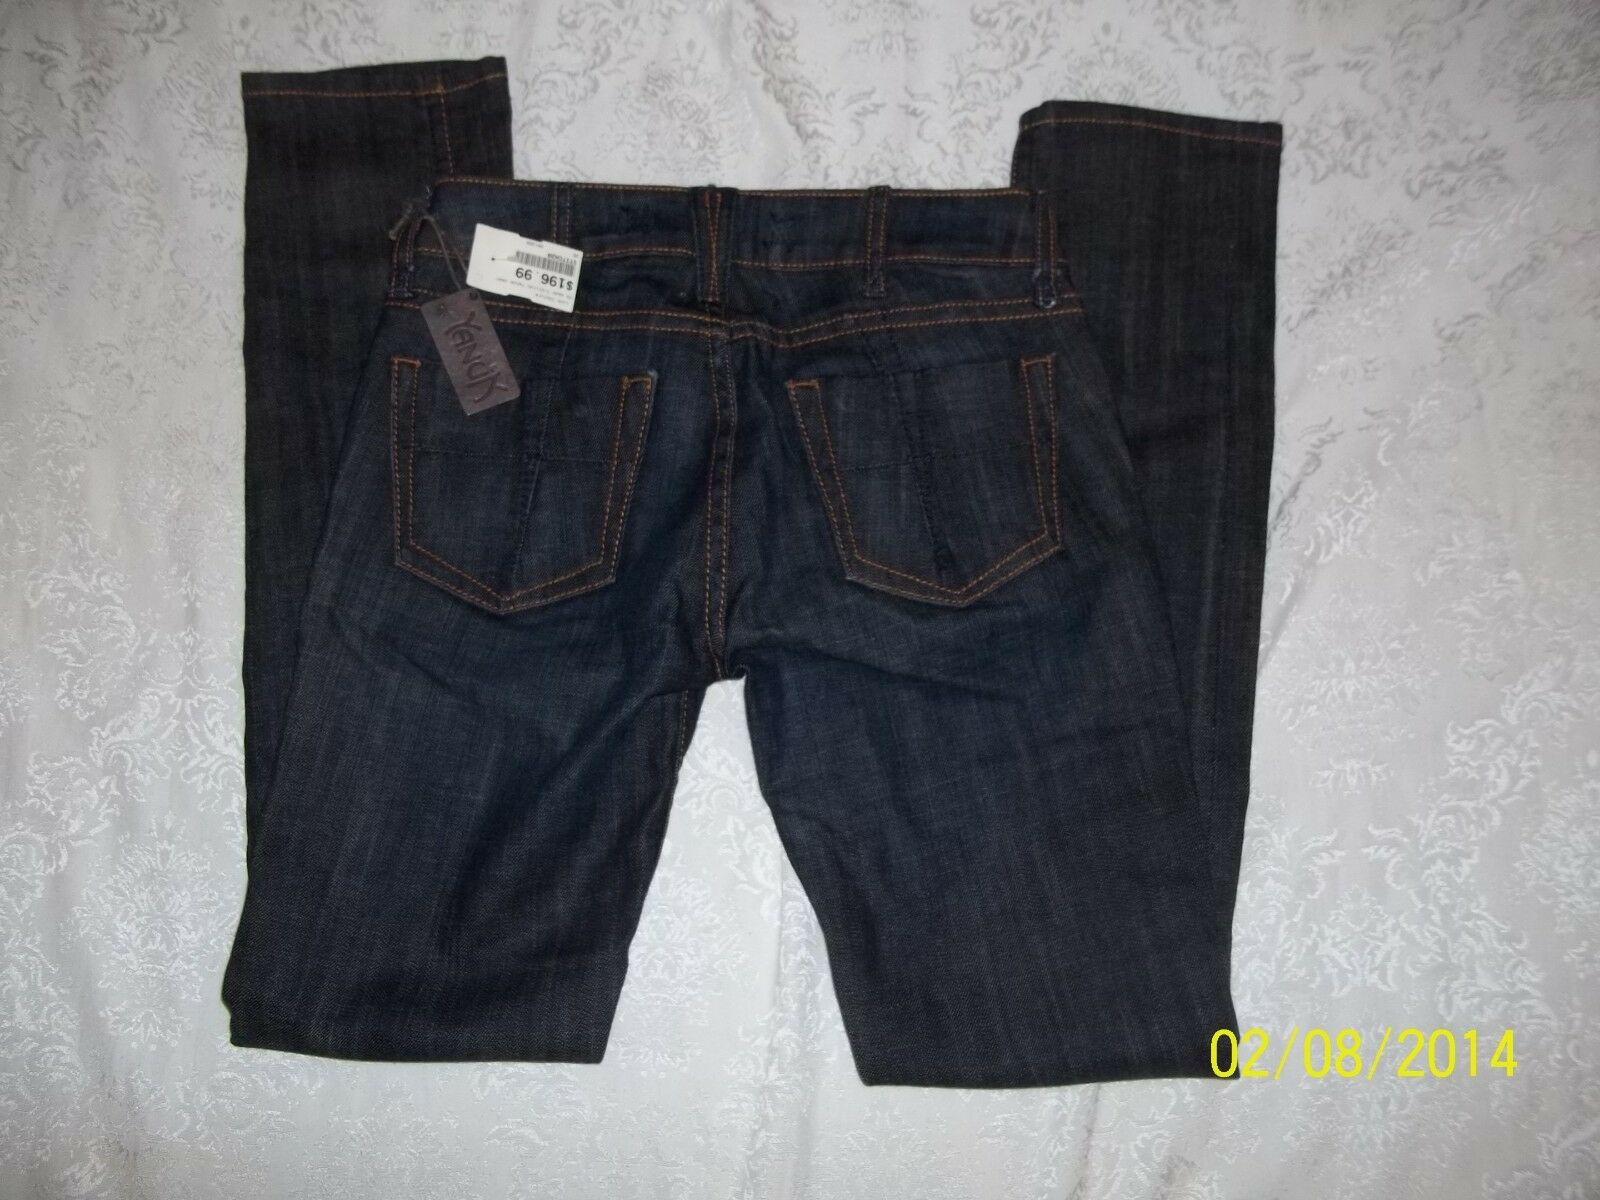 NWT YANUK DK WASH T-STITCH PAGE JEANS W 25 RET  MADE IN USA NICE MUST SEE